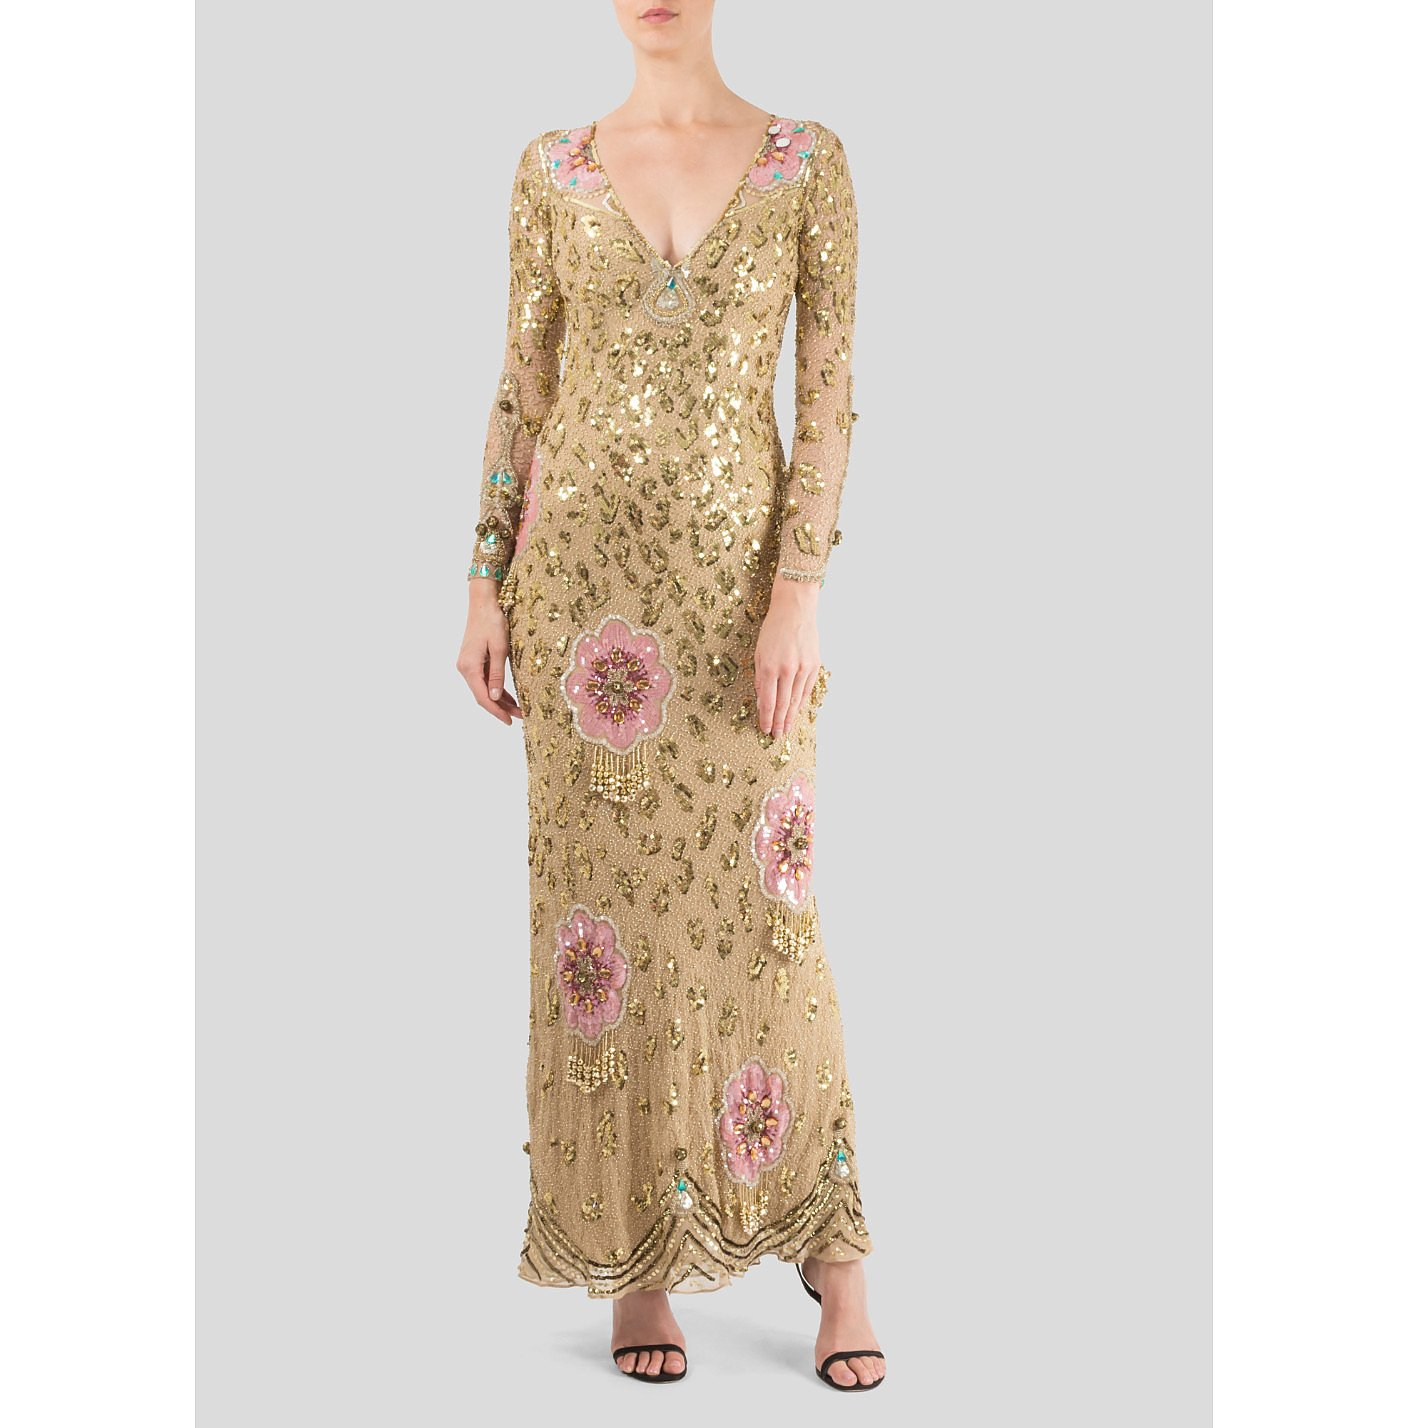 Jenny Packham Sequinned Floral Gown